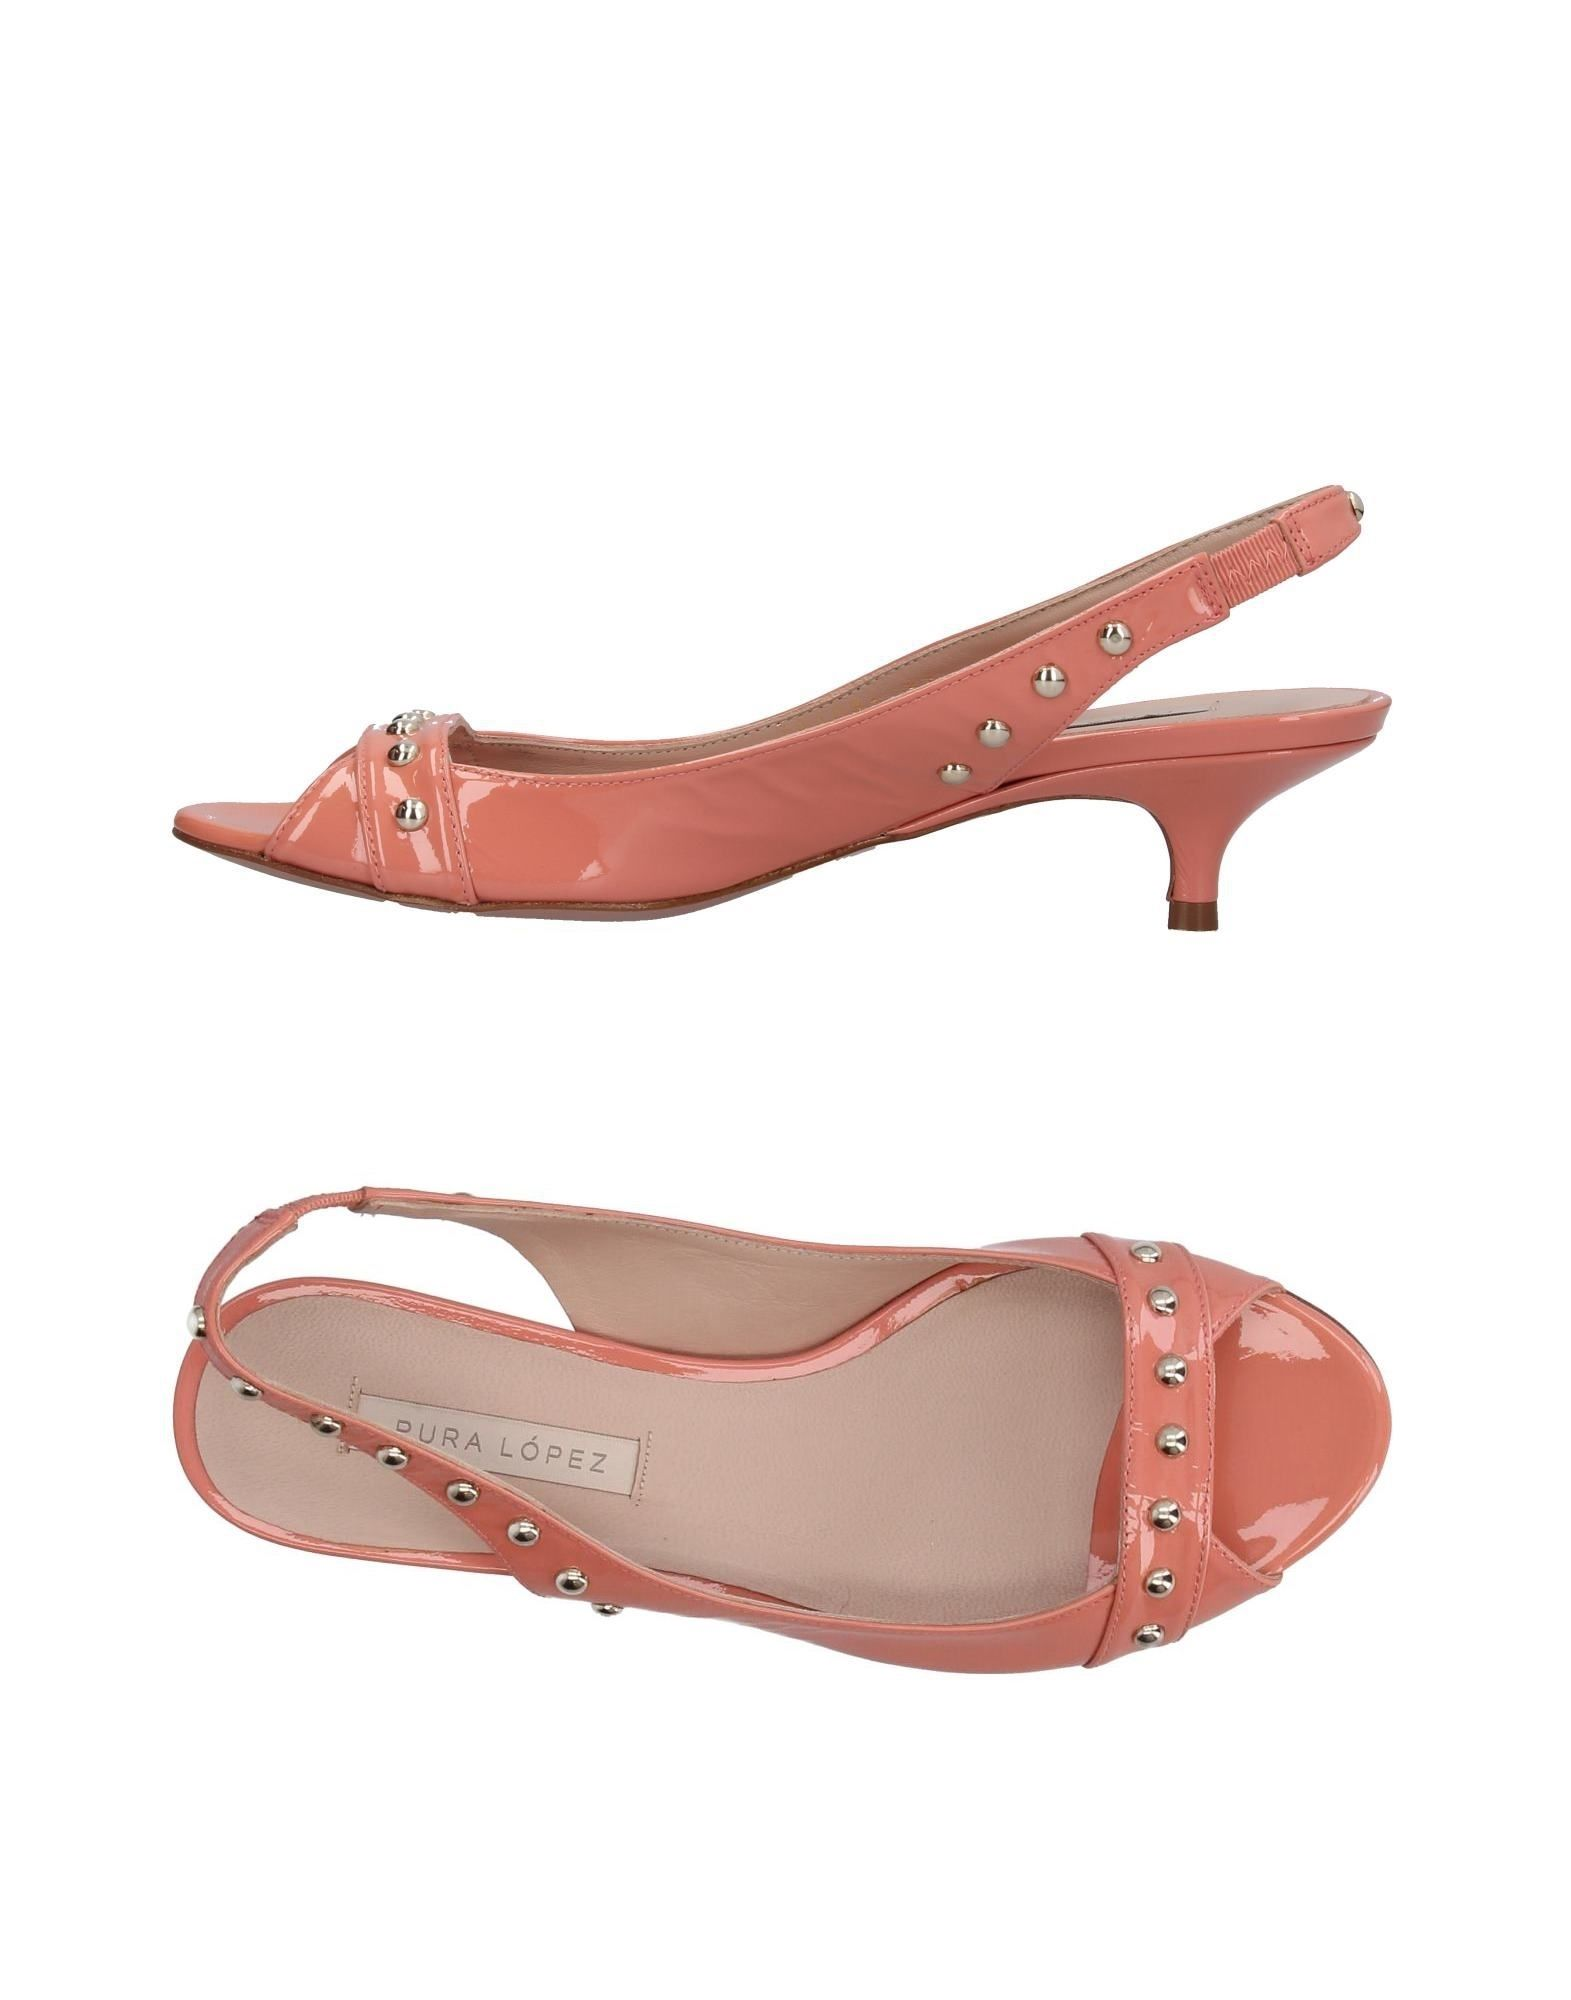 finest selection 0a003 8ad38 Sandals in Salmon Pink